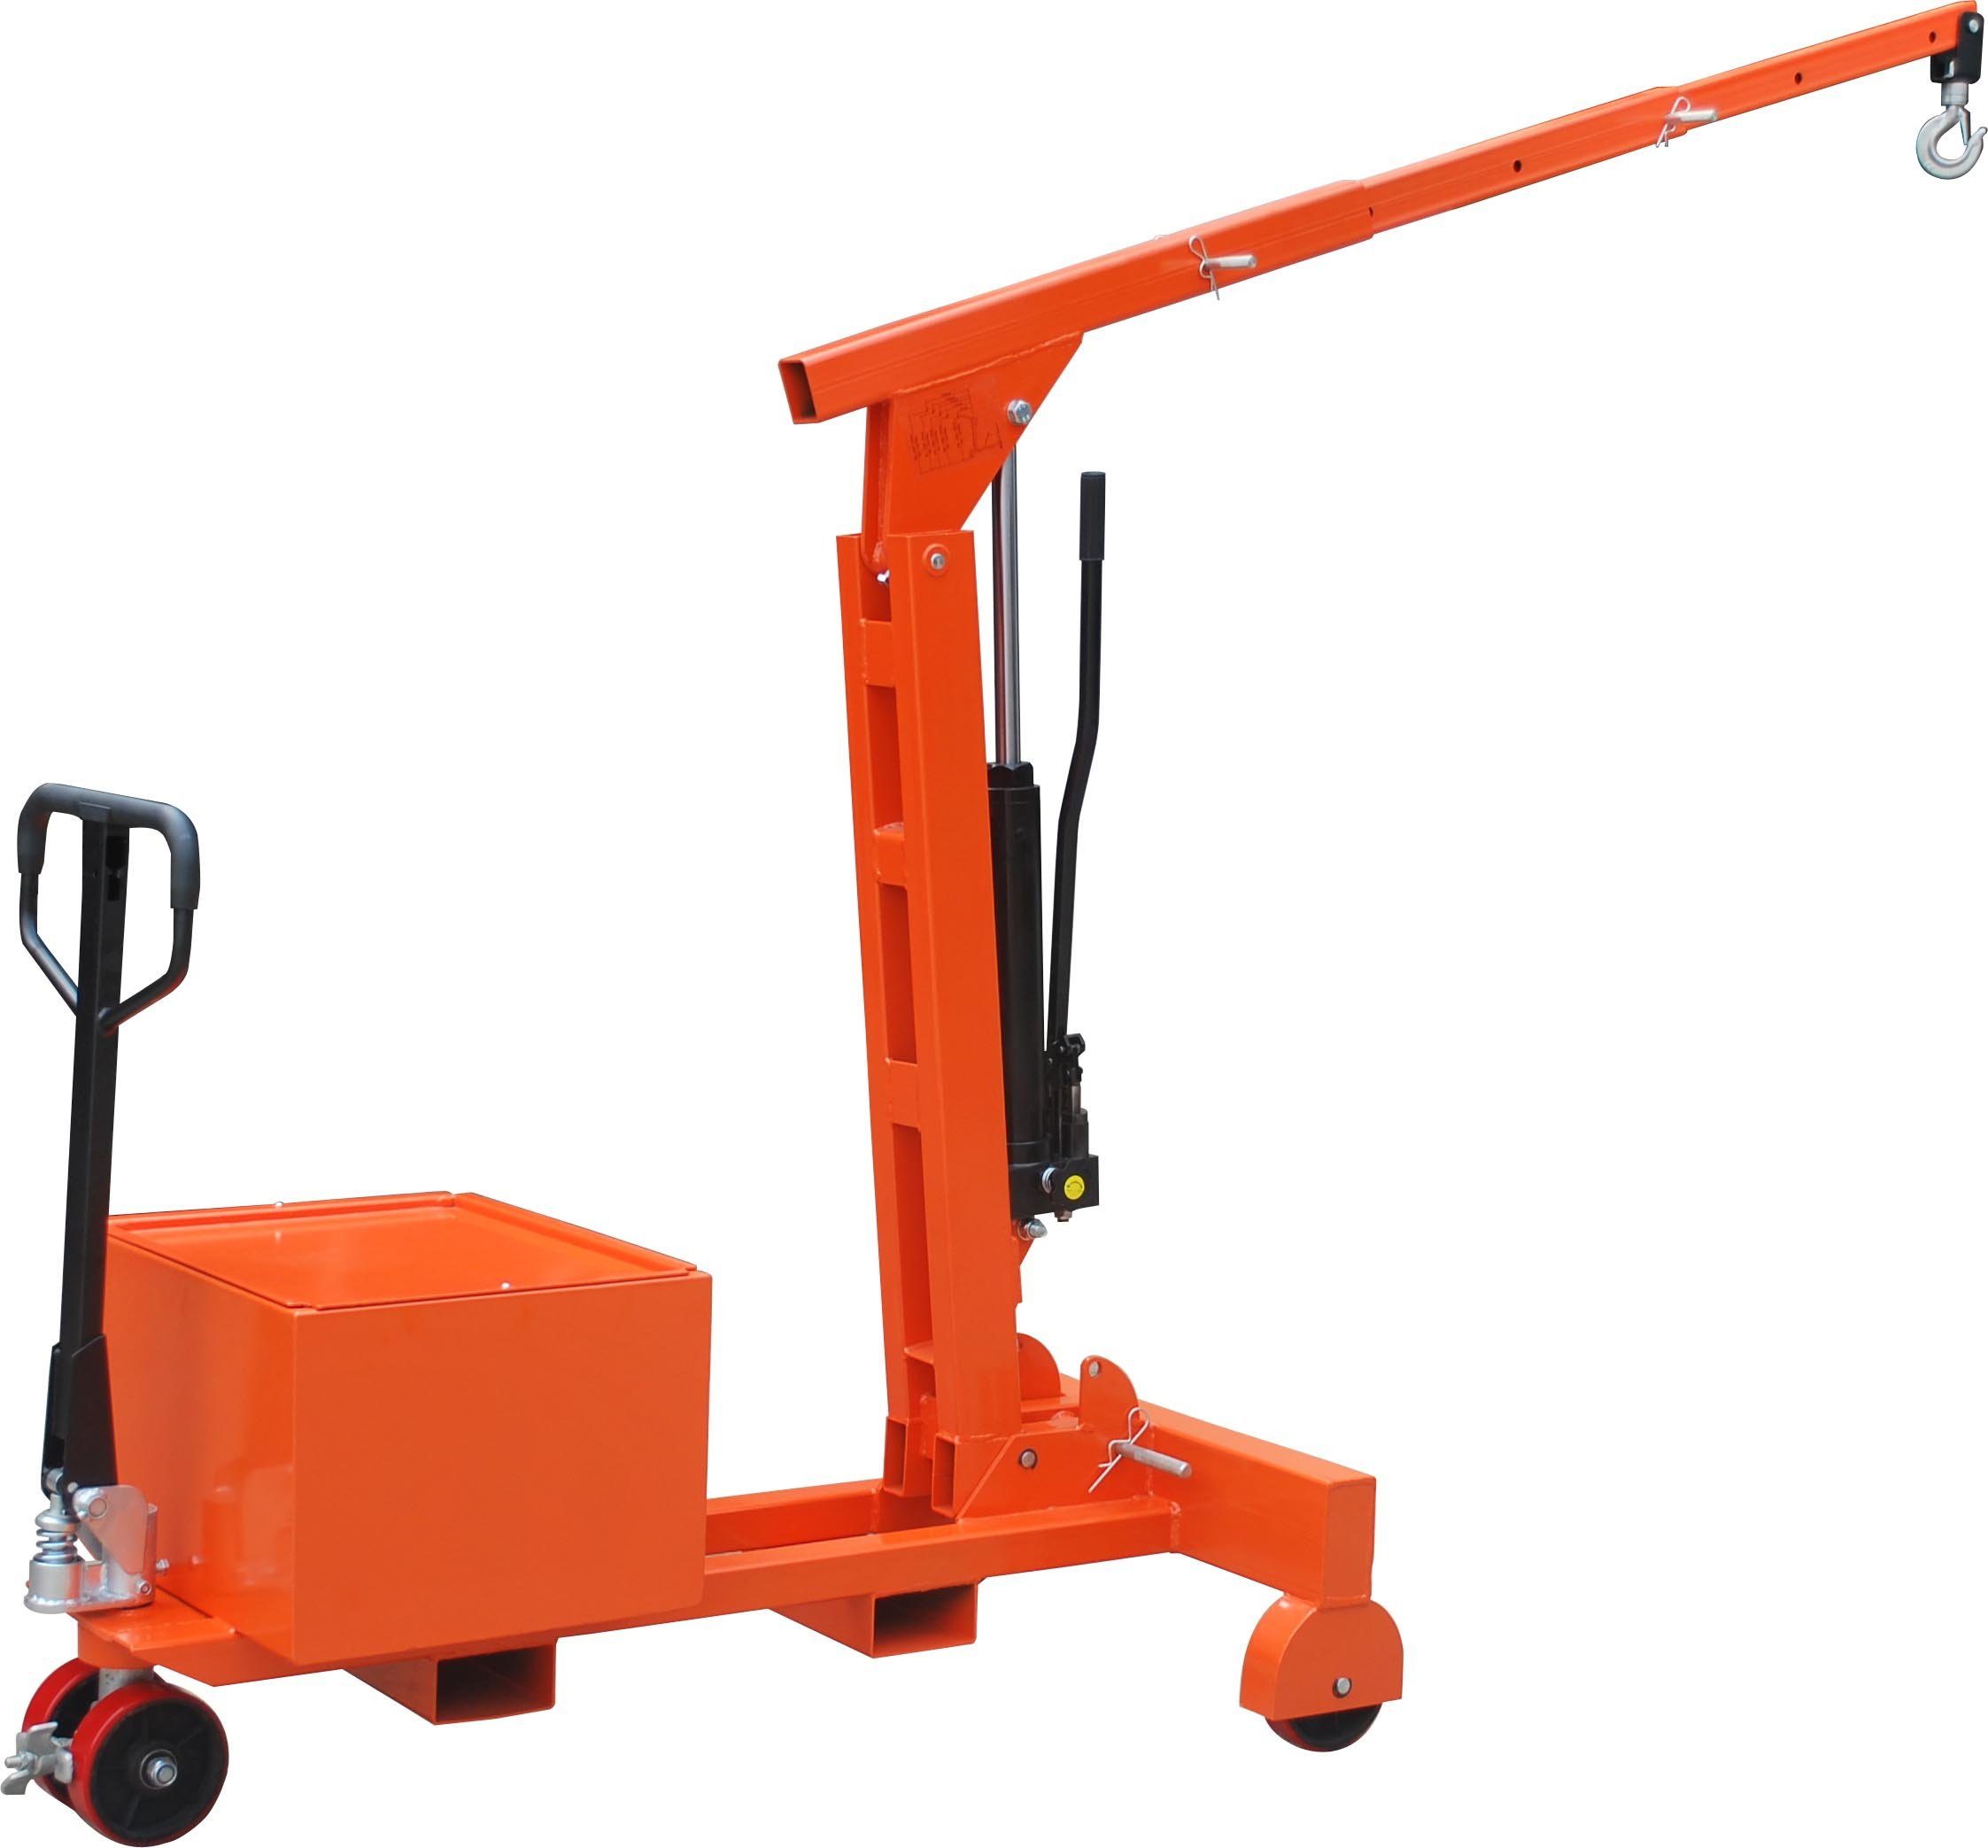 Hu-Lift LH075 Counter Balanced Shop Crane, 1650-Pound Capacity